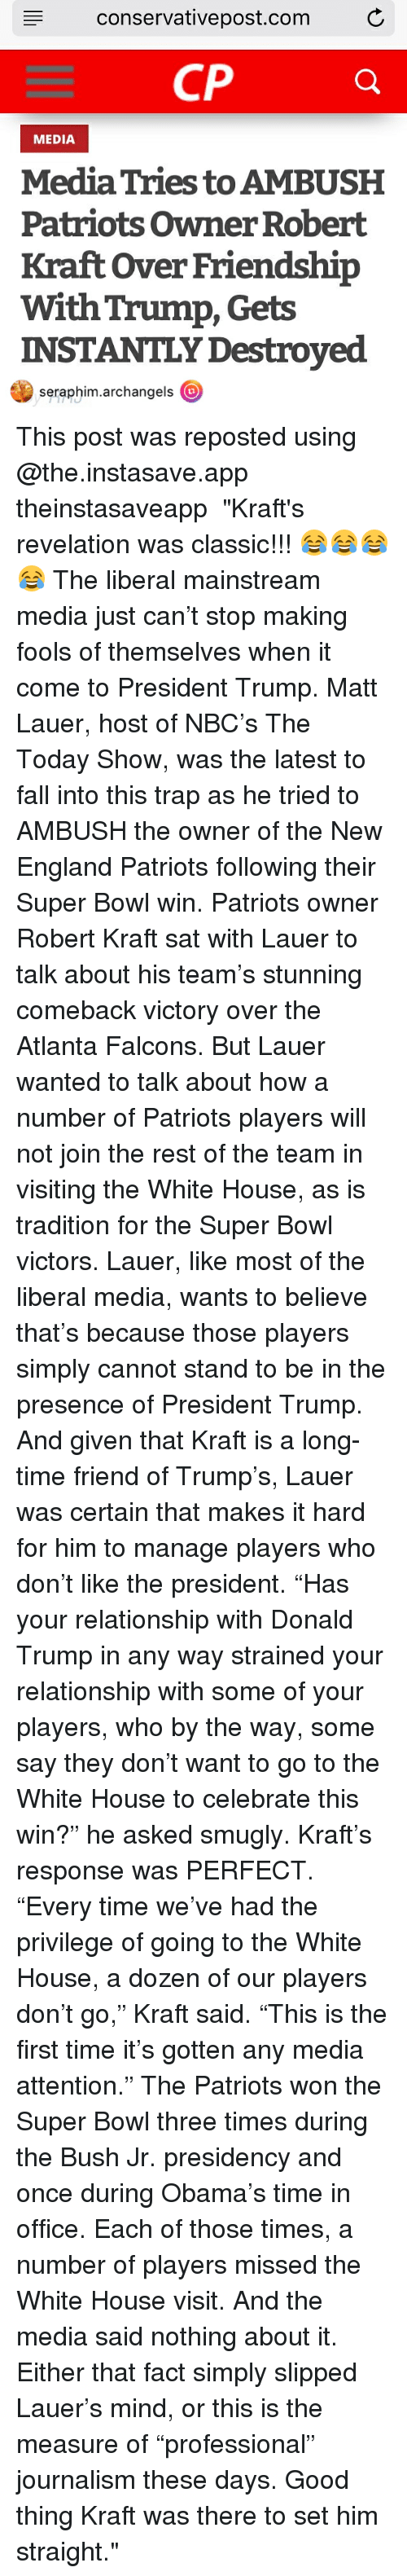 "New England Patriot: conservative post.com C  CP  MEDIA  MediaTries to AMBUSH  Patriots owner Robert  Kraft over Friendship  With Trump, Gets  INSTANTLY Destroyed  seraphim.archangels  (O This post was reposted using @the.instasave.app theinstasaveapp ・・・ ""Kraft's revelation was classic!!! 😂😂😂😂 The liberal mainstream media just can't stop making fools of themselves when it come to President Trump. Matt Lauer, host of NBC's The Today Show, was the latest to fall into this trap as he tried to AMBUSH the owner of the New England Patriots following their Super Bowl win. Patriots owner Robert Kraft sat with Lauer to talk about his team's stunning comeback victory over the Atlanta Falcons. But Lauer wanted to talk about how a number of Patriots players will not join the rest of the team in visiting the White House, as is tradition for the Super Bowl victors. Lauer, like most of the liberal media, wants to believe that's because those players simply cannot stand to be in the presence of President Trump. And given that Kraft is a long-time friend of Trump's, Lauer was certain that makes it hard for him to manage players who don't like the president. ""Has your relationship with Donald Trump in any way strained your relationship with some of your players, who by the way, some say they don't want to go to the White House to celebrate this win?"" he asked smugly. Kraft's response was PERFECT. ""Every time we've had the privilege of going to the White House, a dozen of our players don't go,"" Kraft said. ""This is the first time it's gotten any media attention."" The Patriots won the Super Bowl three times during the Bush Jr. presidency and once during Obama's time in office. Each of those times, a number of players missed the White House visit. And the media said nothing about it. Either that fact simply slipped Lauer's mind, or this is the measure of ""professional"" journalism these days. Good thing Kraft was there to set him straight."""